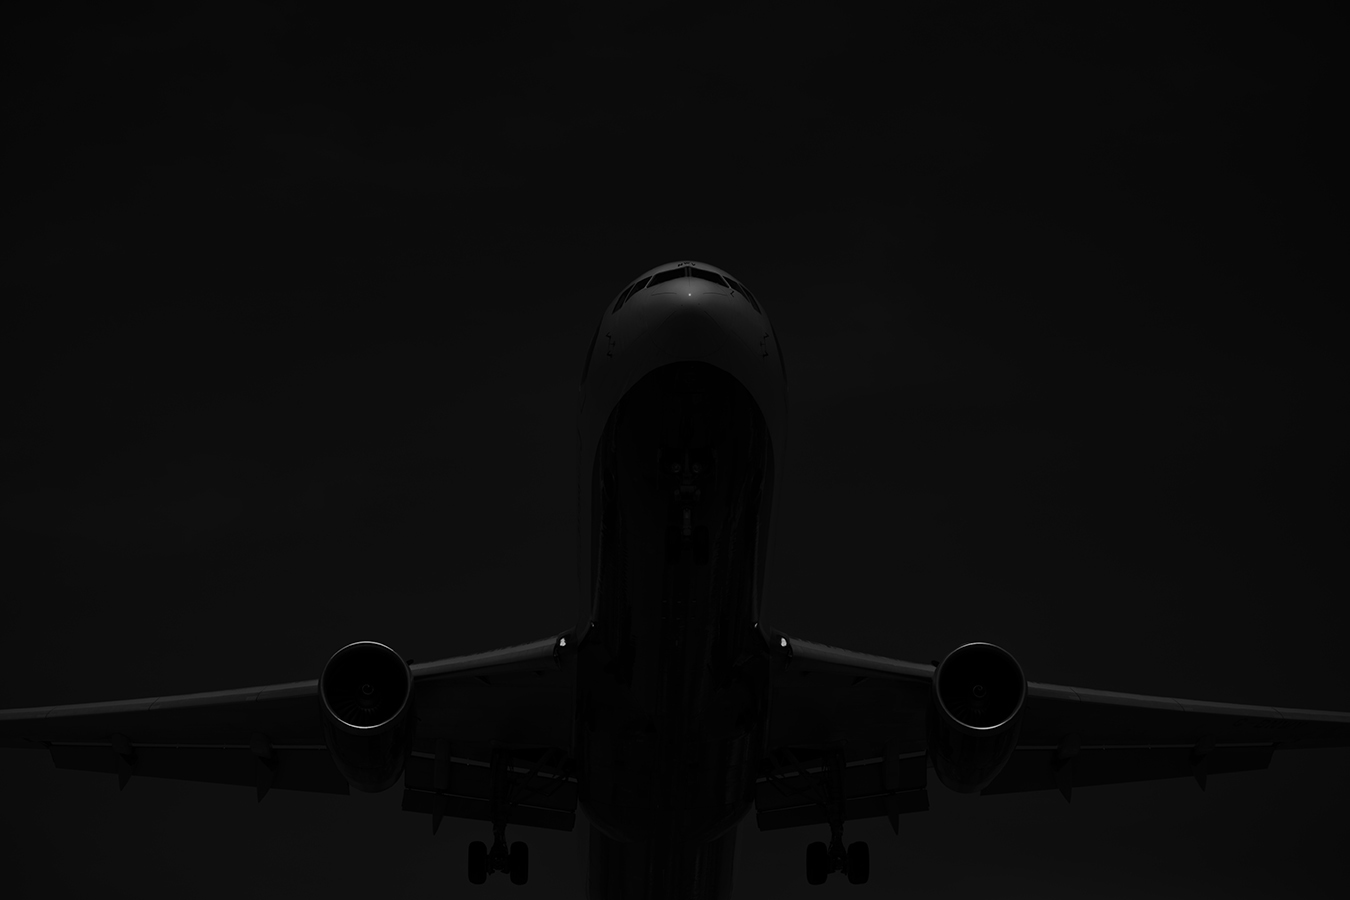 The Laird Co BRitish Airways Boeing 767 black and white minimal aviation avgeek airplaine airline photography for site.jpg